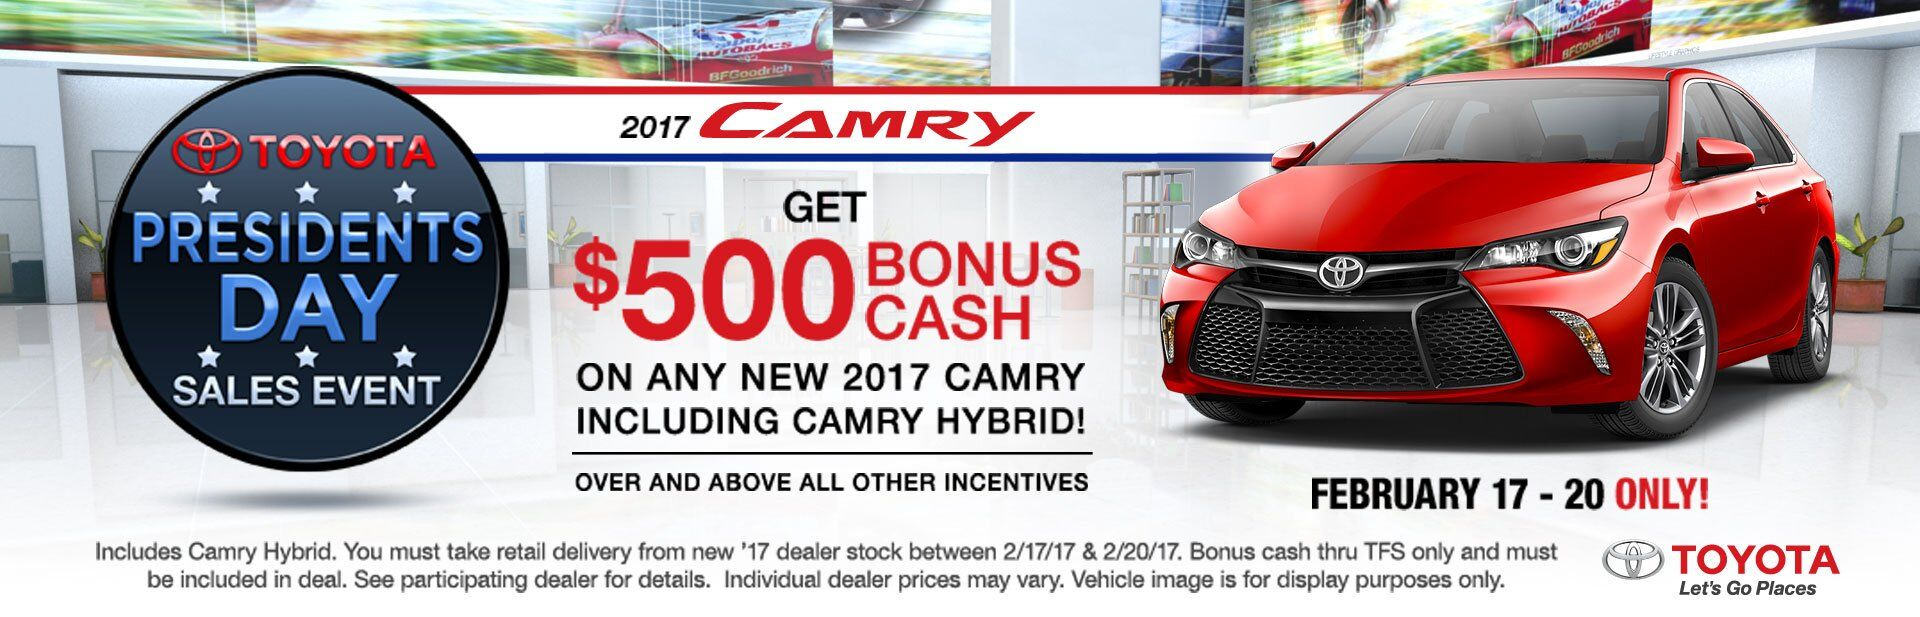 $500 BONUS CASH on 2017 Toyota Camry on Top of All Other Offers!